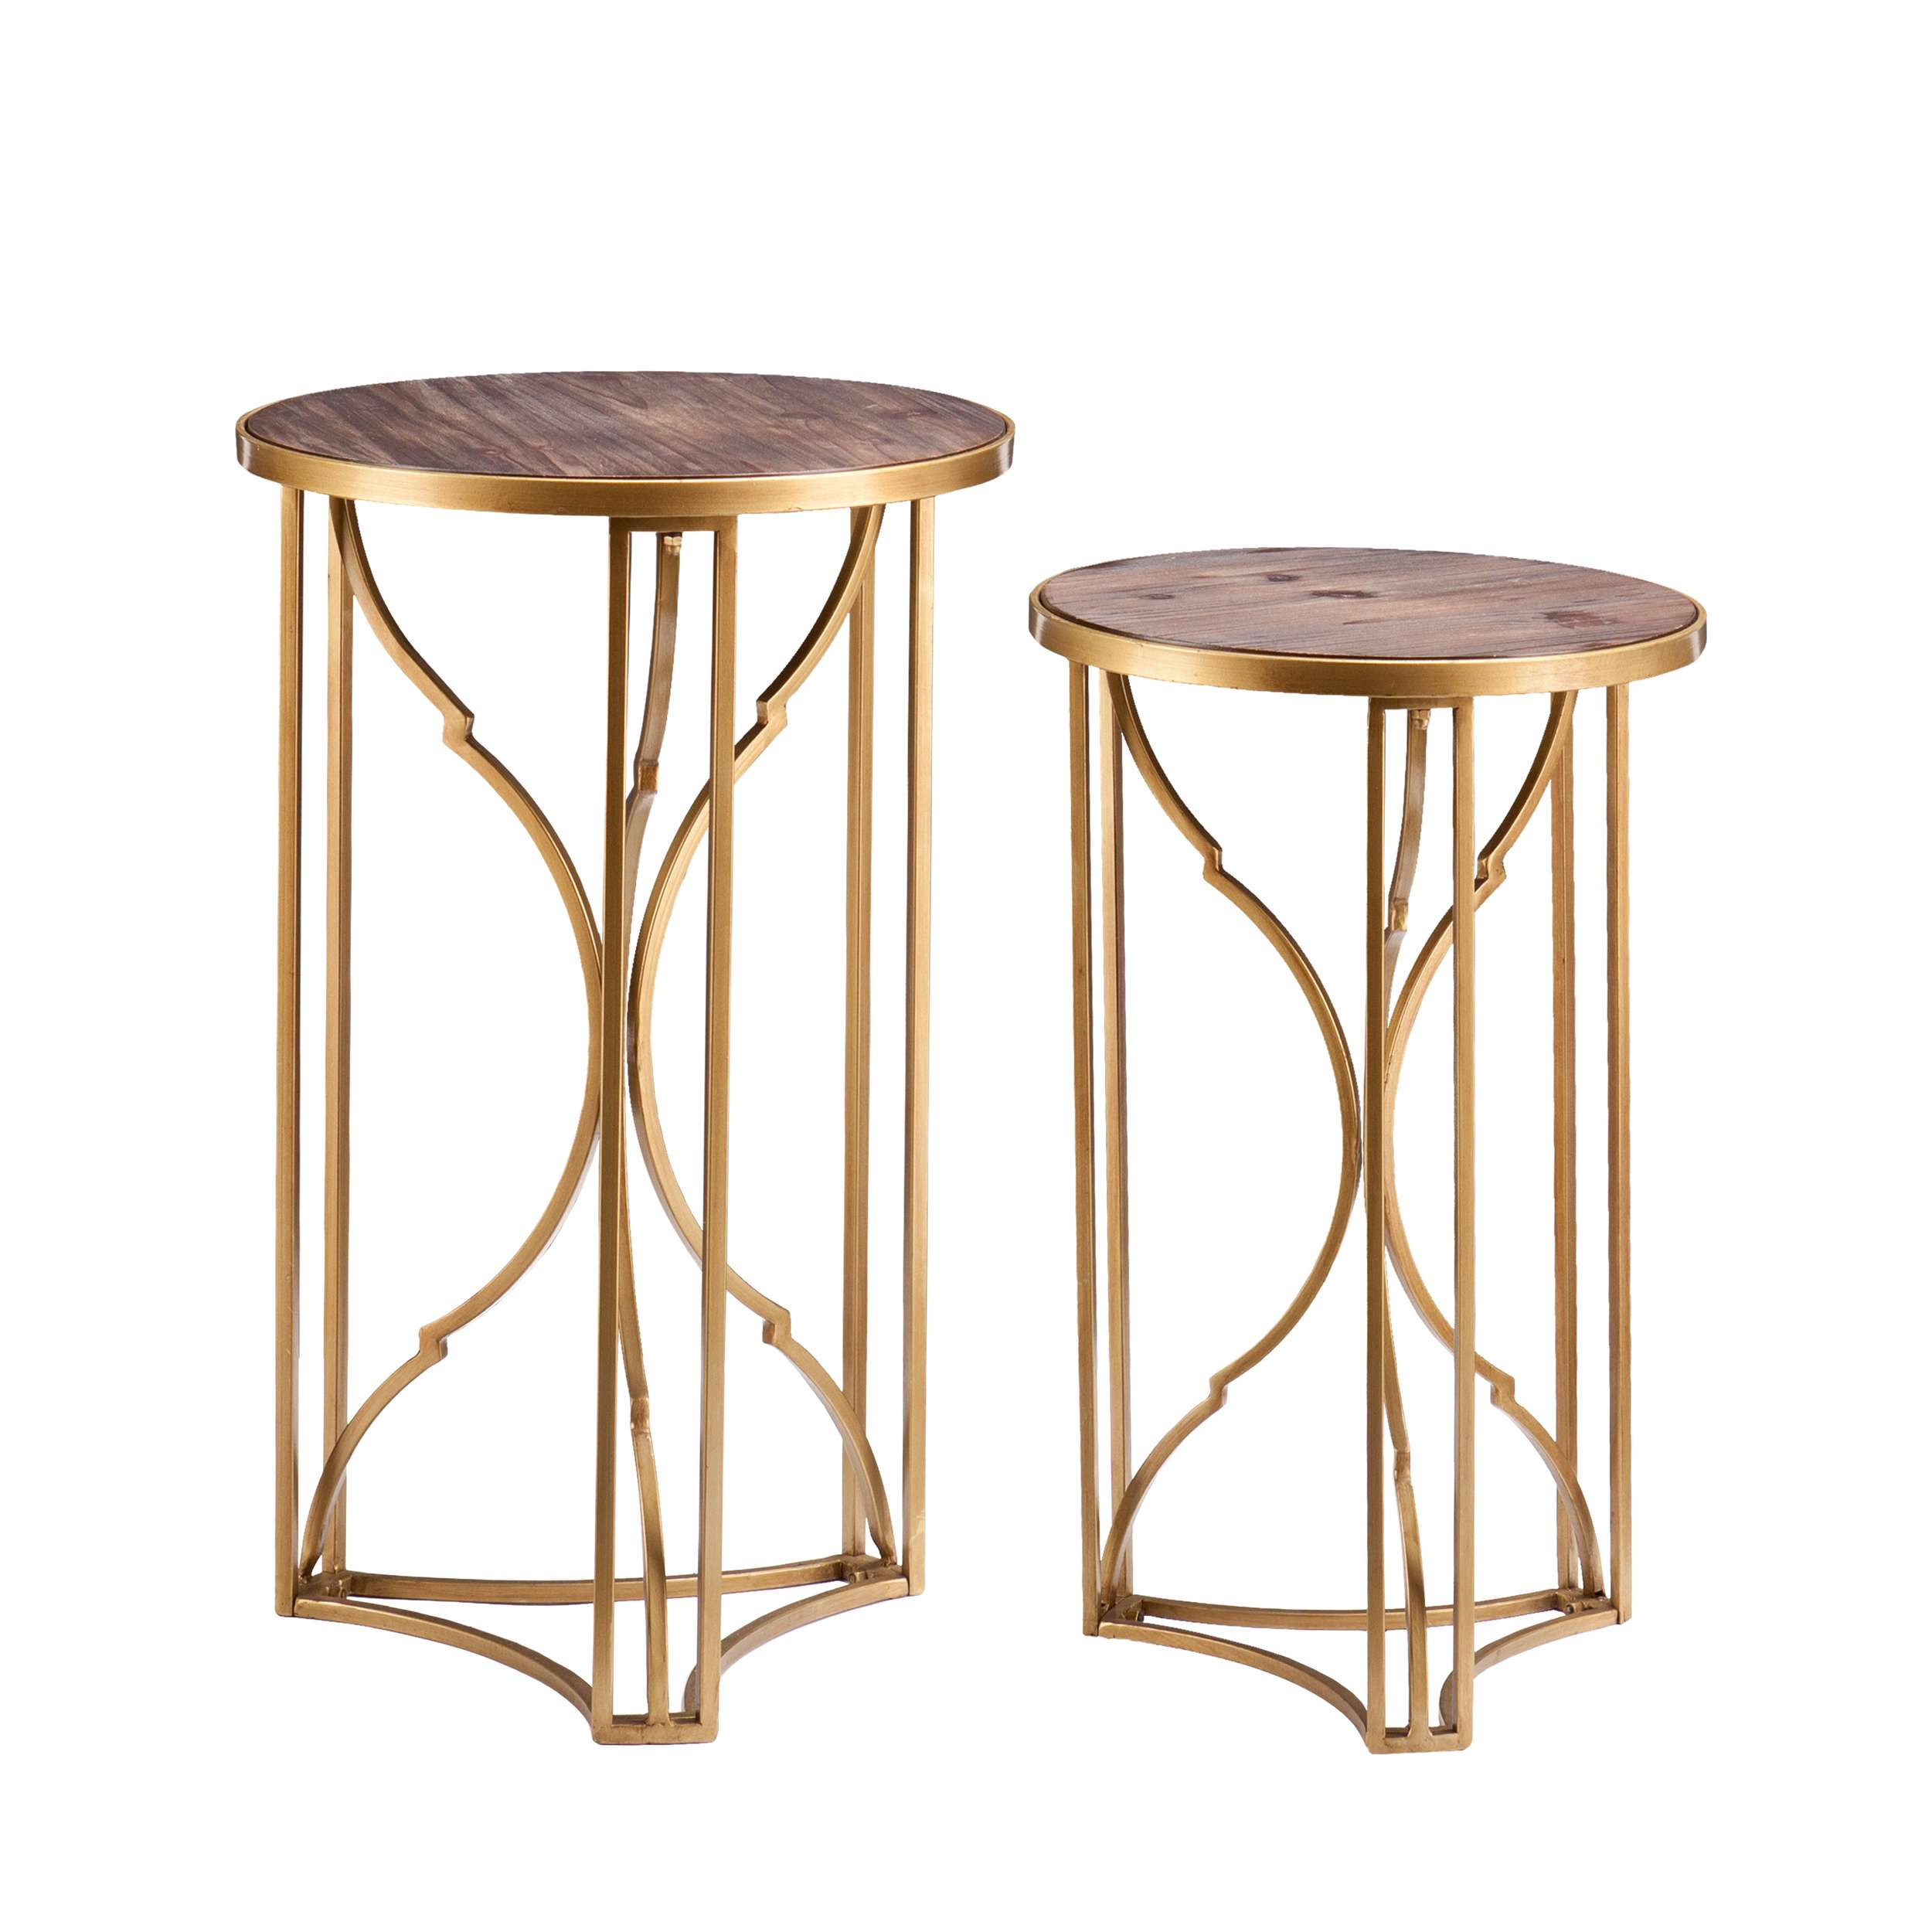 southern enterprises alaina matte gold wood grained accent table set round quilted toppers nautical bathroom sconces dining chair design new furniture plexiglass nesting tables